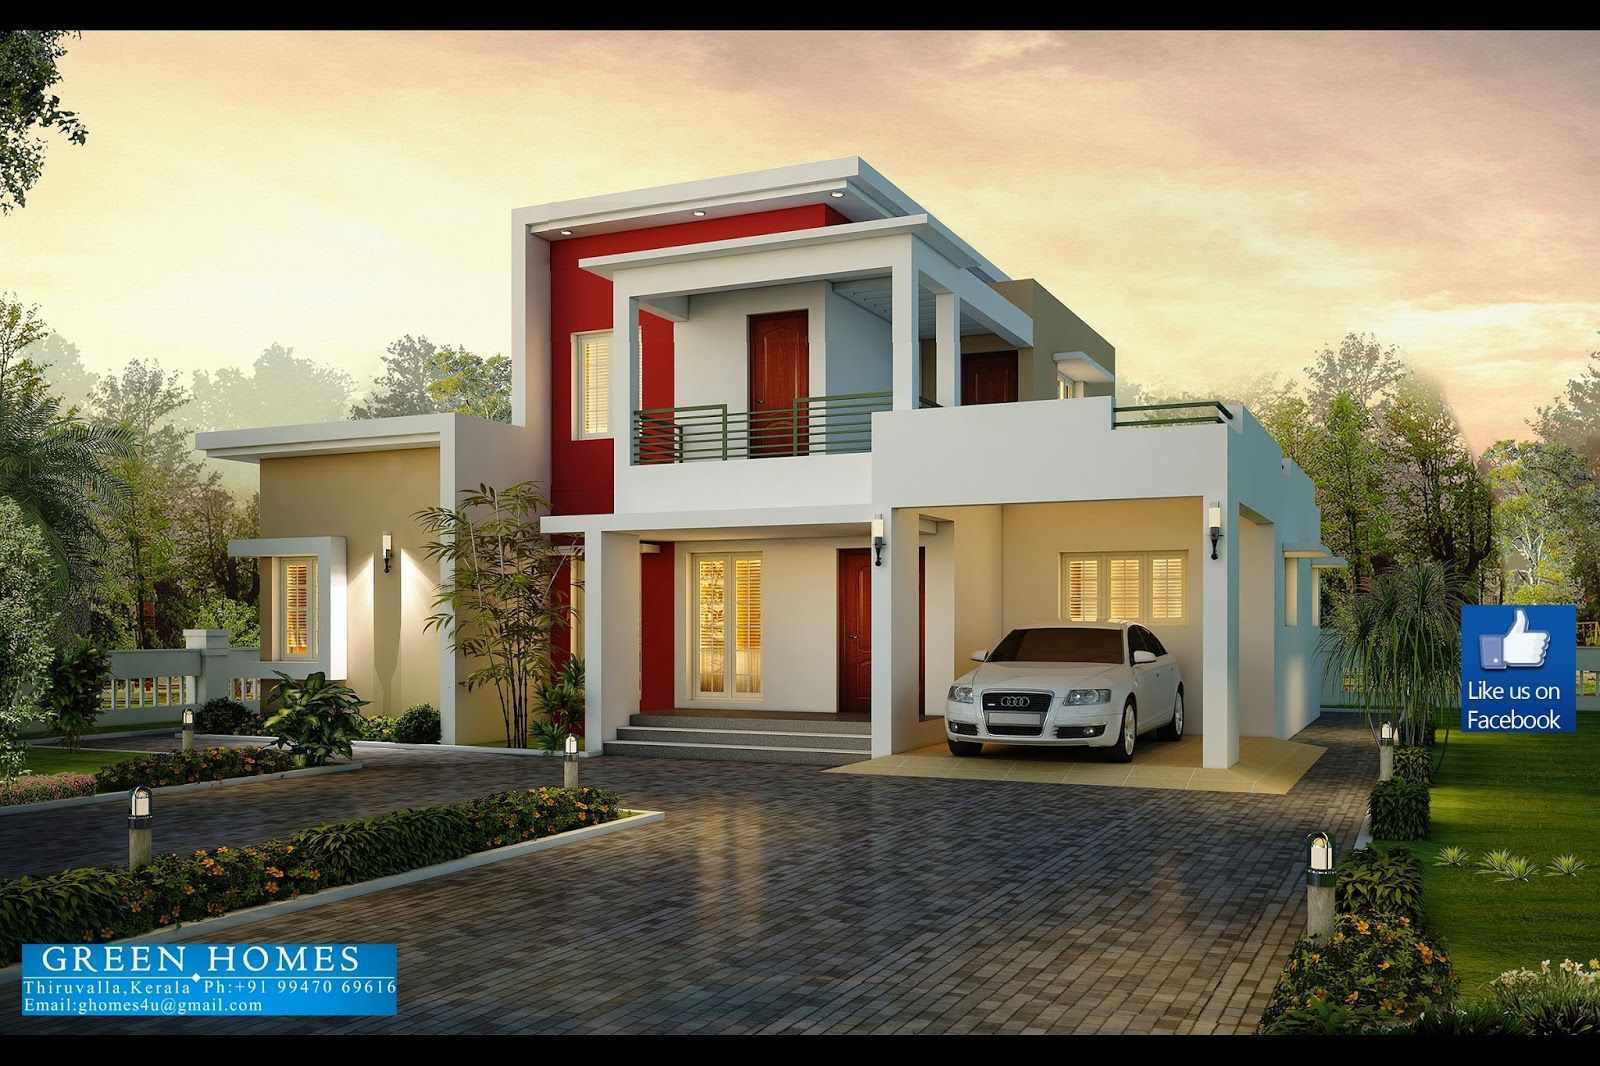 3 bedroom section 8 homes modern 3 bedroom house designs starter rh pinterest com modern 3 bedroom house designs - maramani modern 3 bedroom house designs - maramani